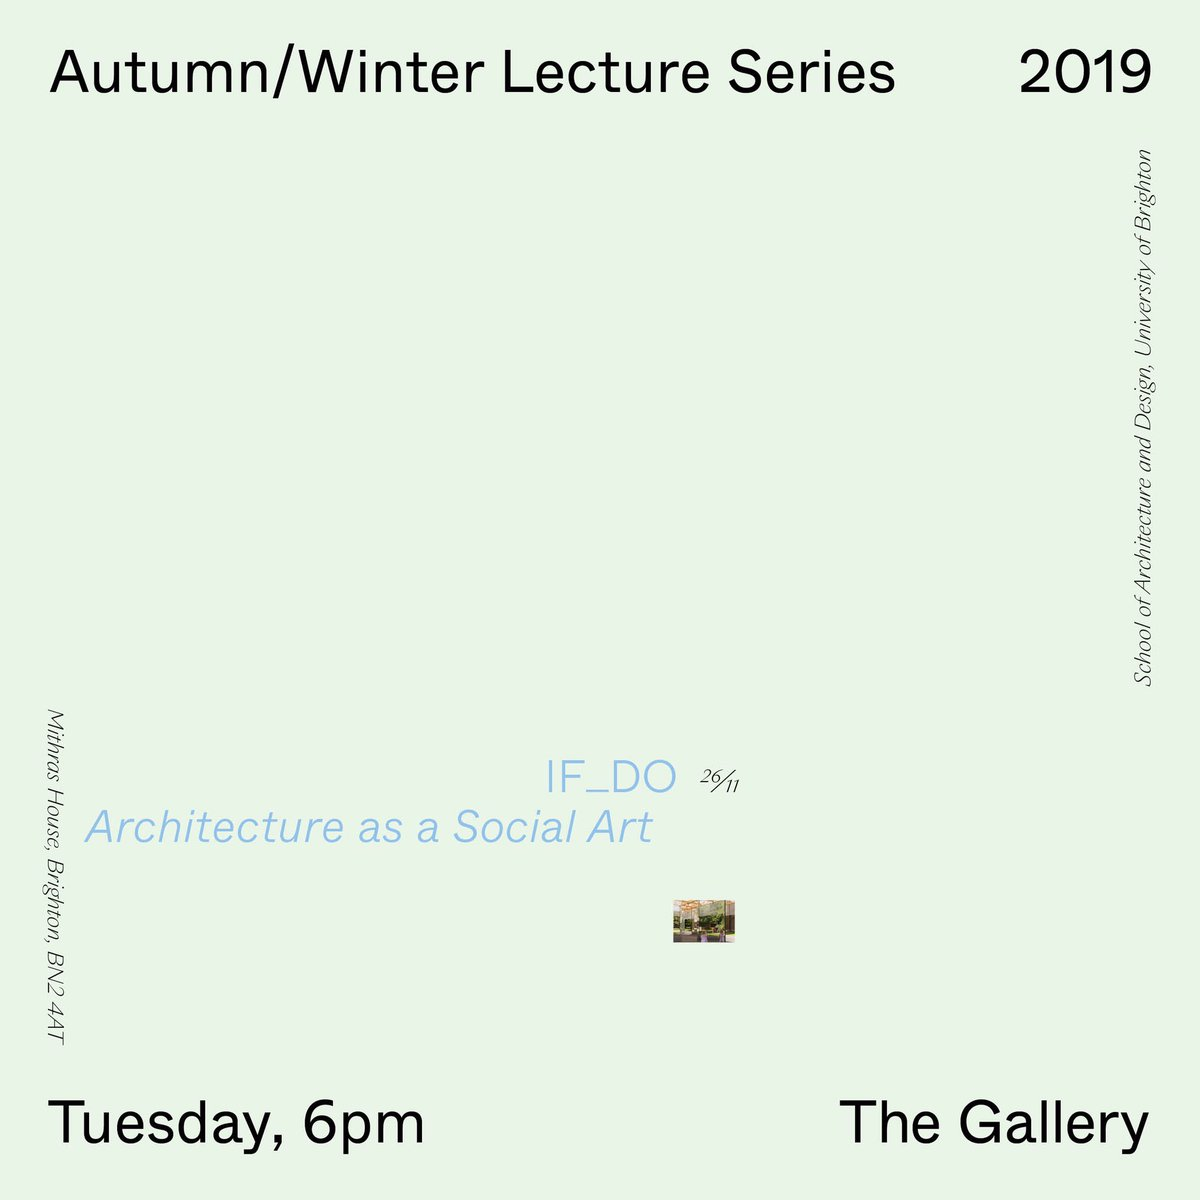 This weeks talk for our Autumn/Winter Public Lecture Series will be given by @if_do. Architecture as a Social Art starts at 6pm in The Gallery at Mithras House. All welcome! @artsbrighton @uniofbrighton #SoAD